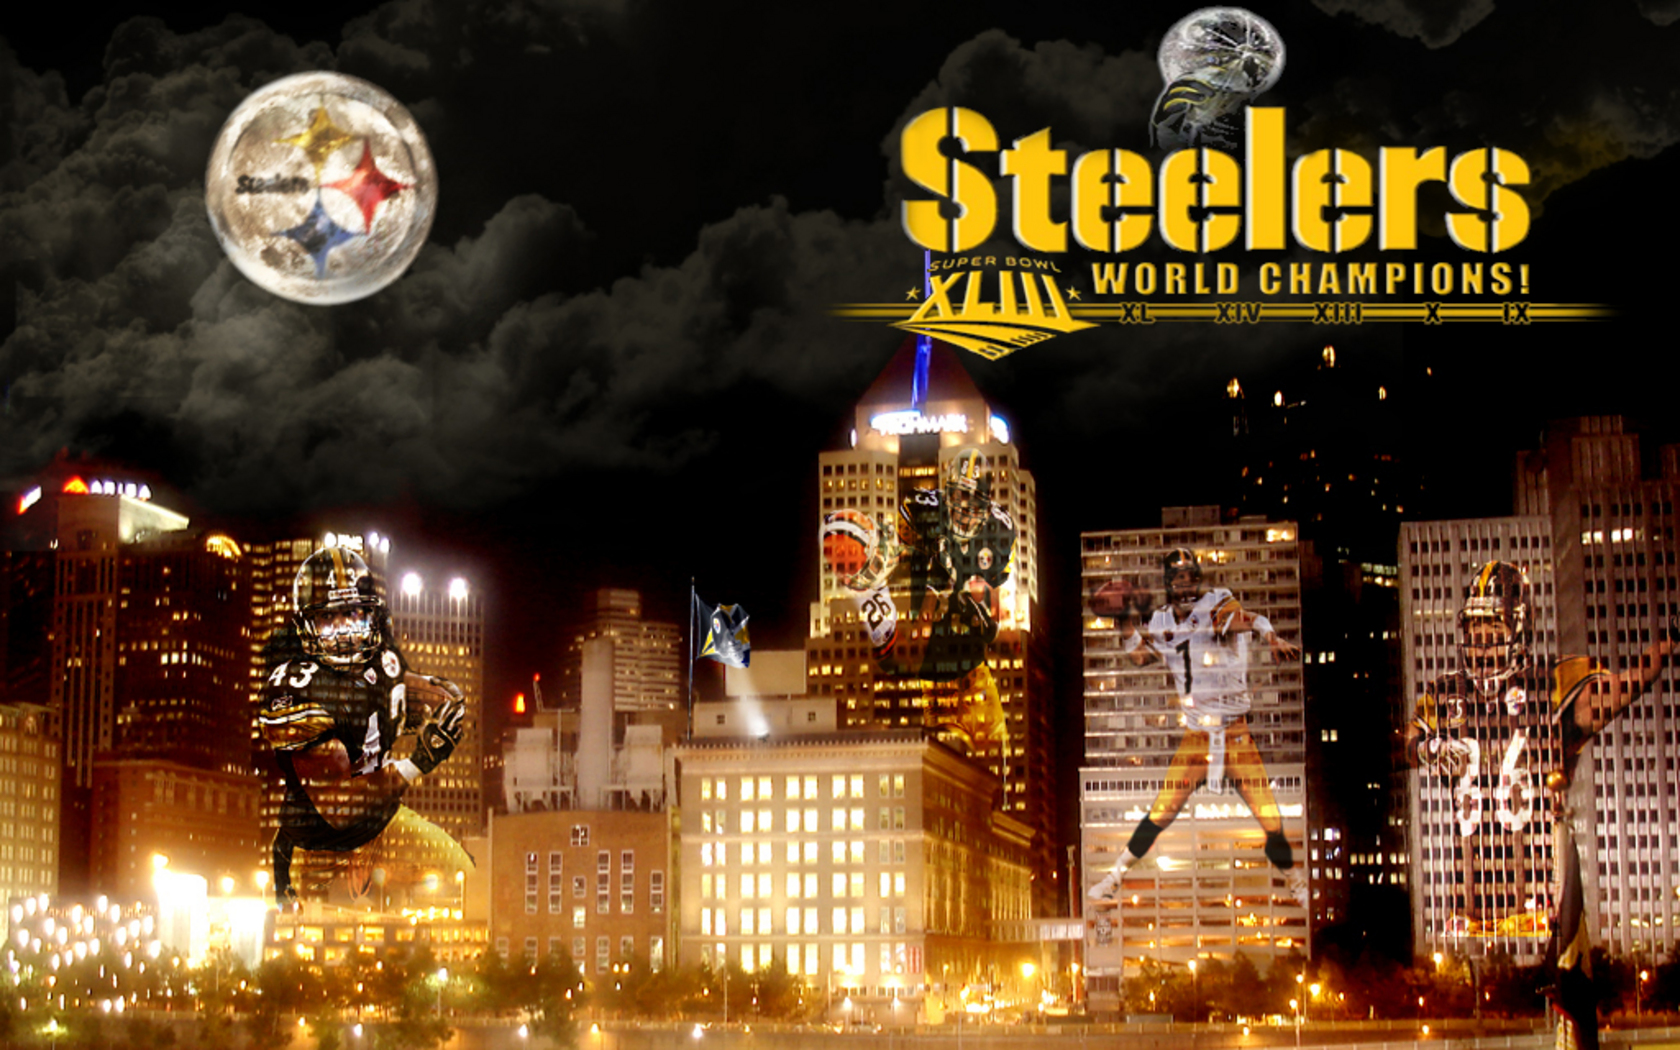 free pittsburgh steelers screensavers Steelers 1680x1050